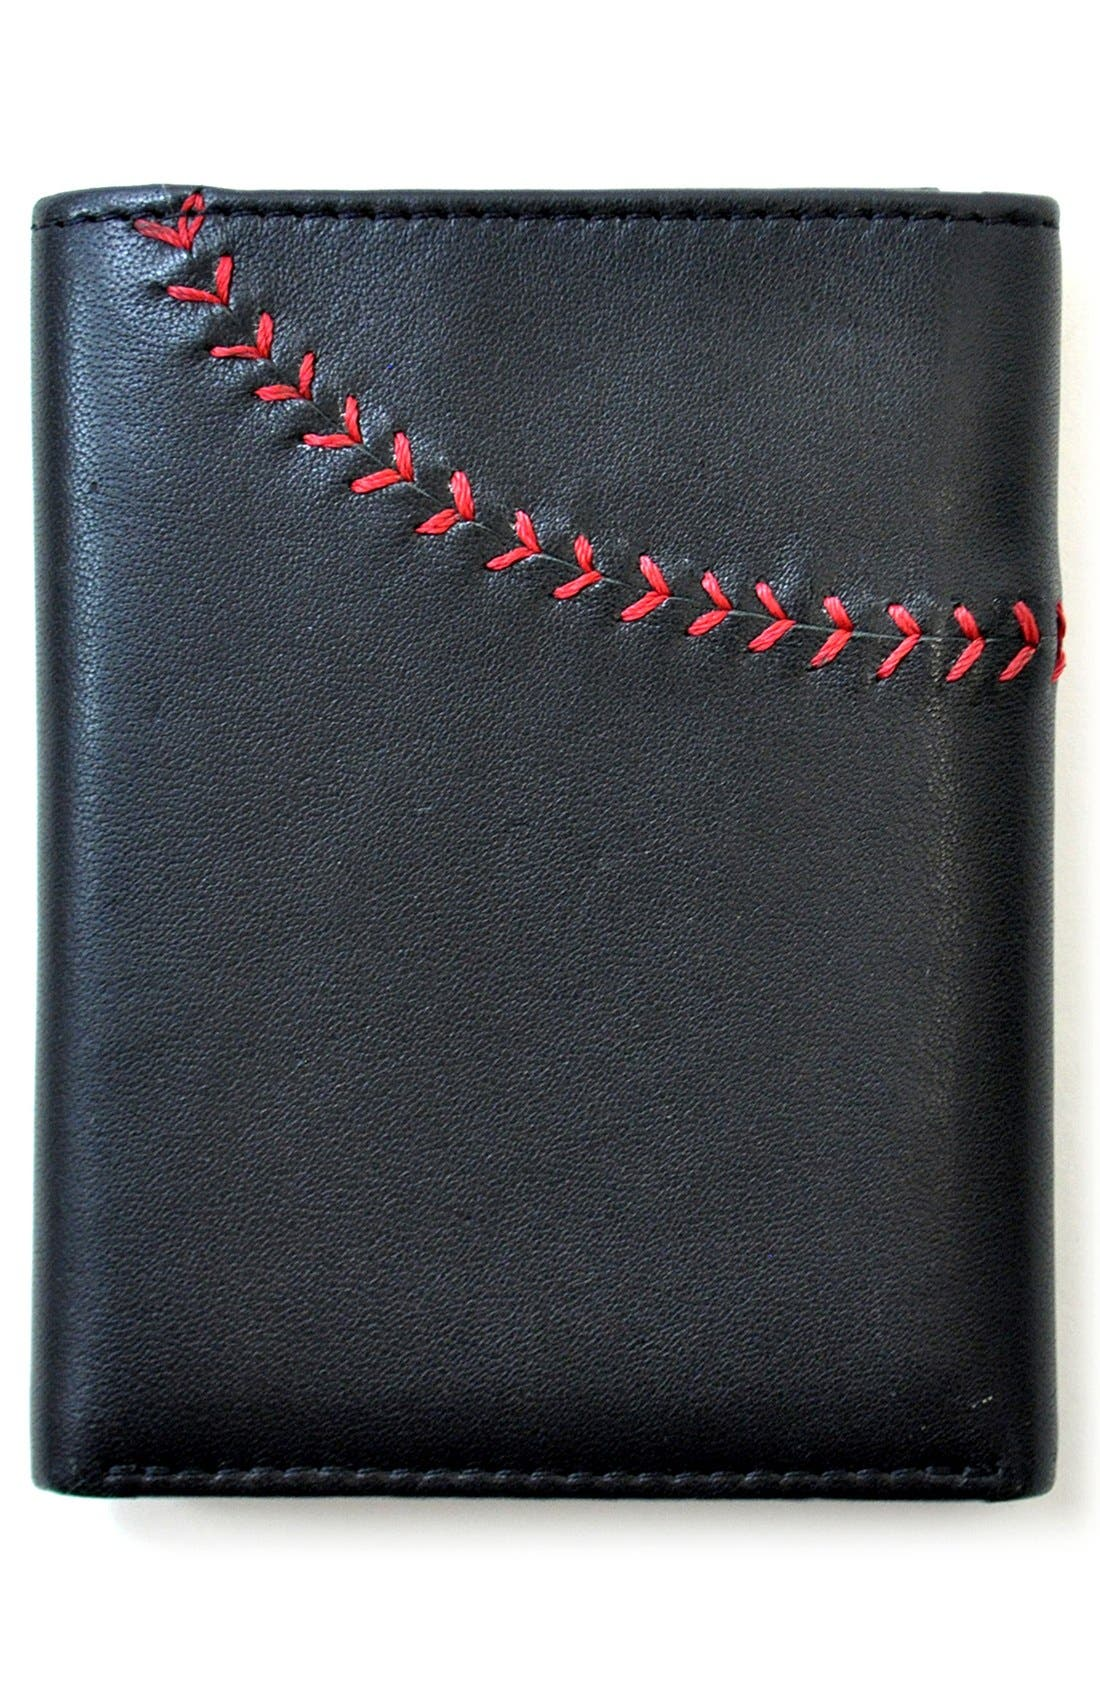 Baseball Stitch Leather Trifold Wallet,                             Alternate thumbnail 8, color,                             001